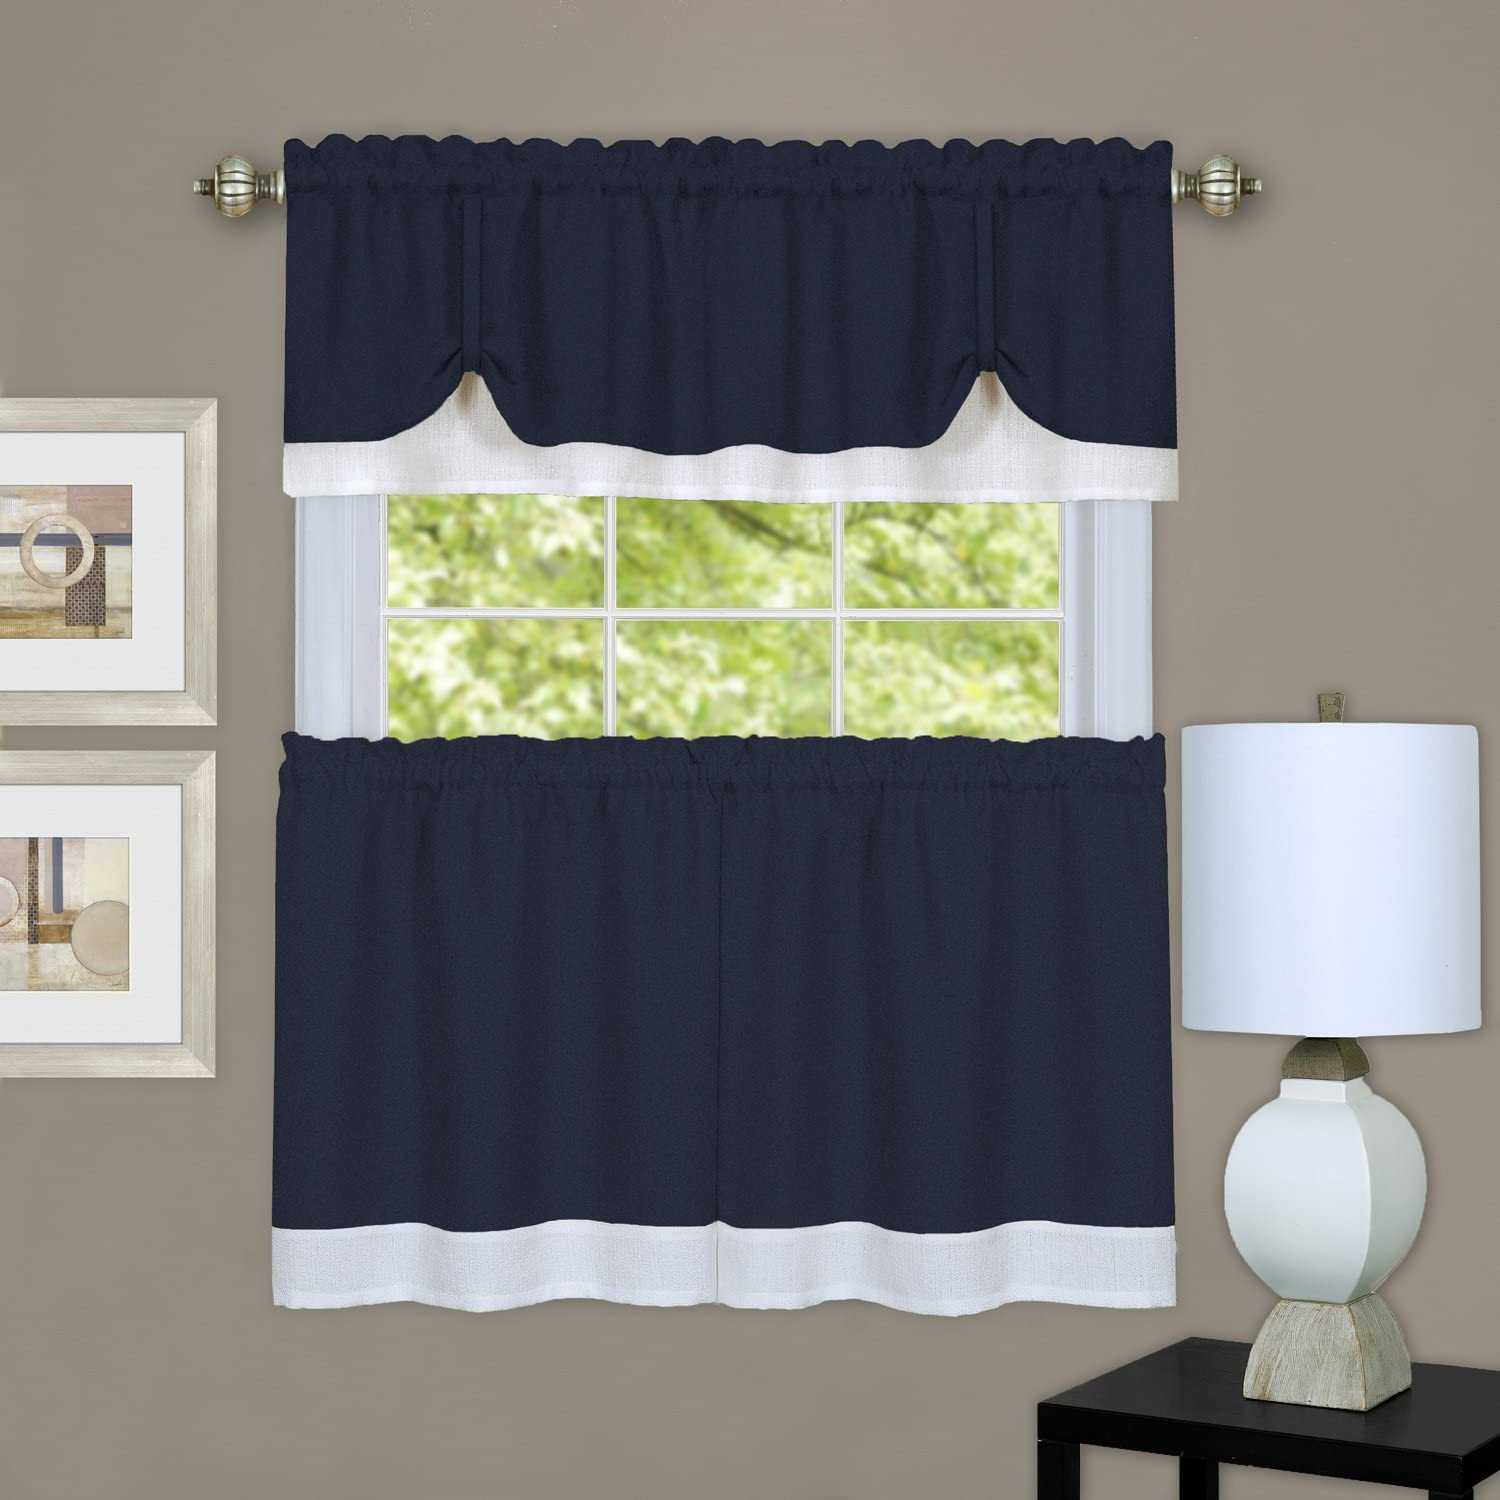 """Achim Home Furnishings Halley Window in a Bag, 56 84-Inch, Chocolate, Tier Pair 58"""" x 24"""" with 14"""" Valance, Navy & White"""